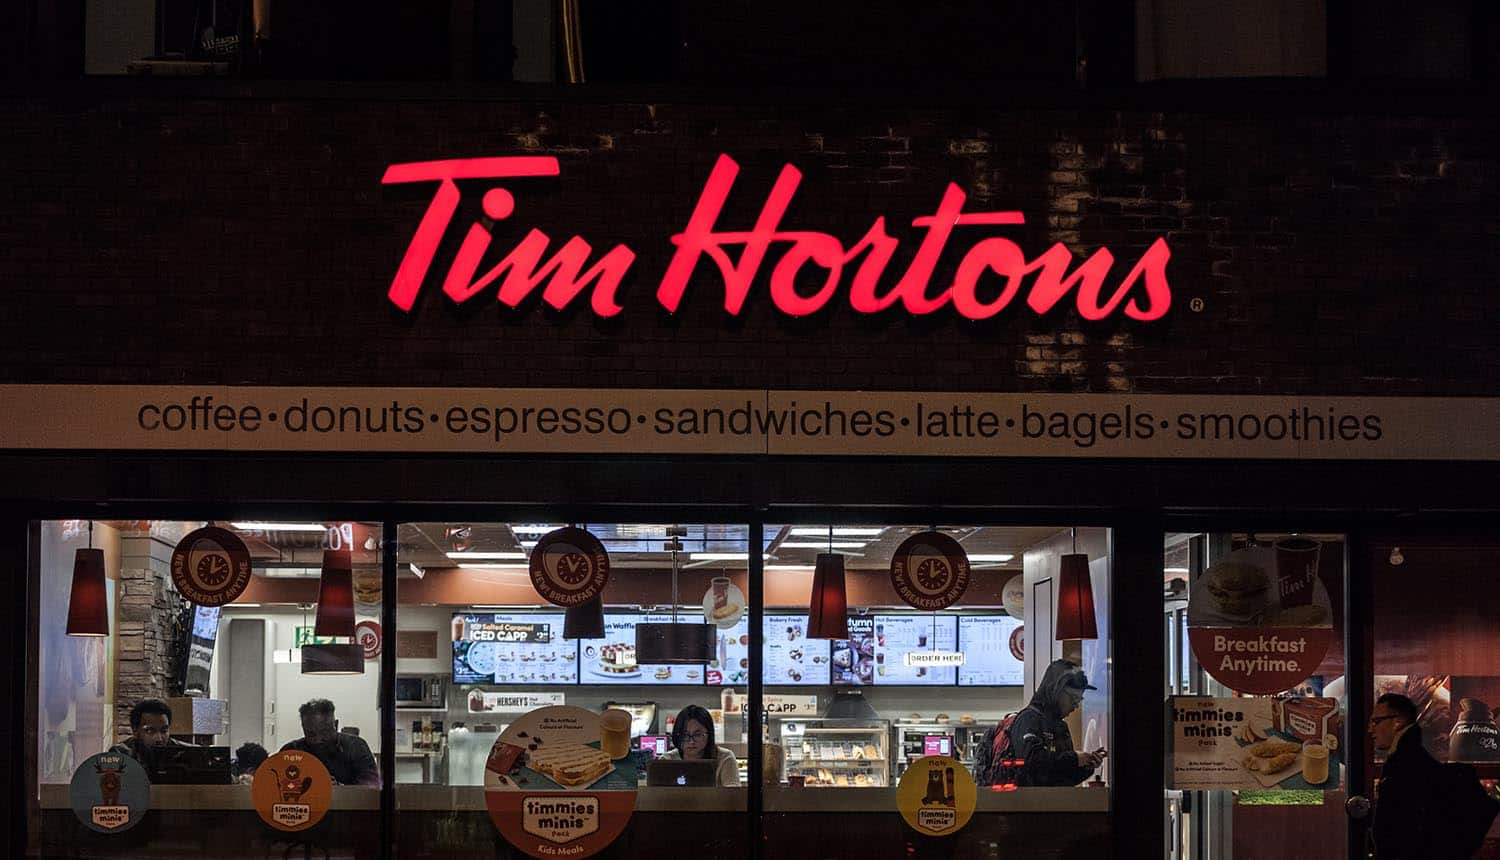 Shop front of Tim Hortons showing Tim Hortons being investigated for their data collection practices